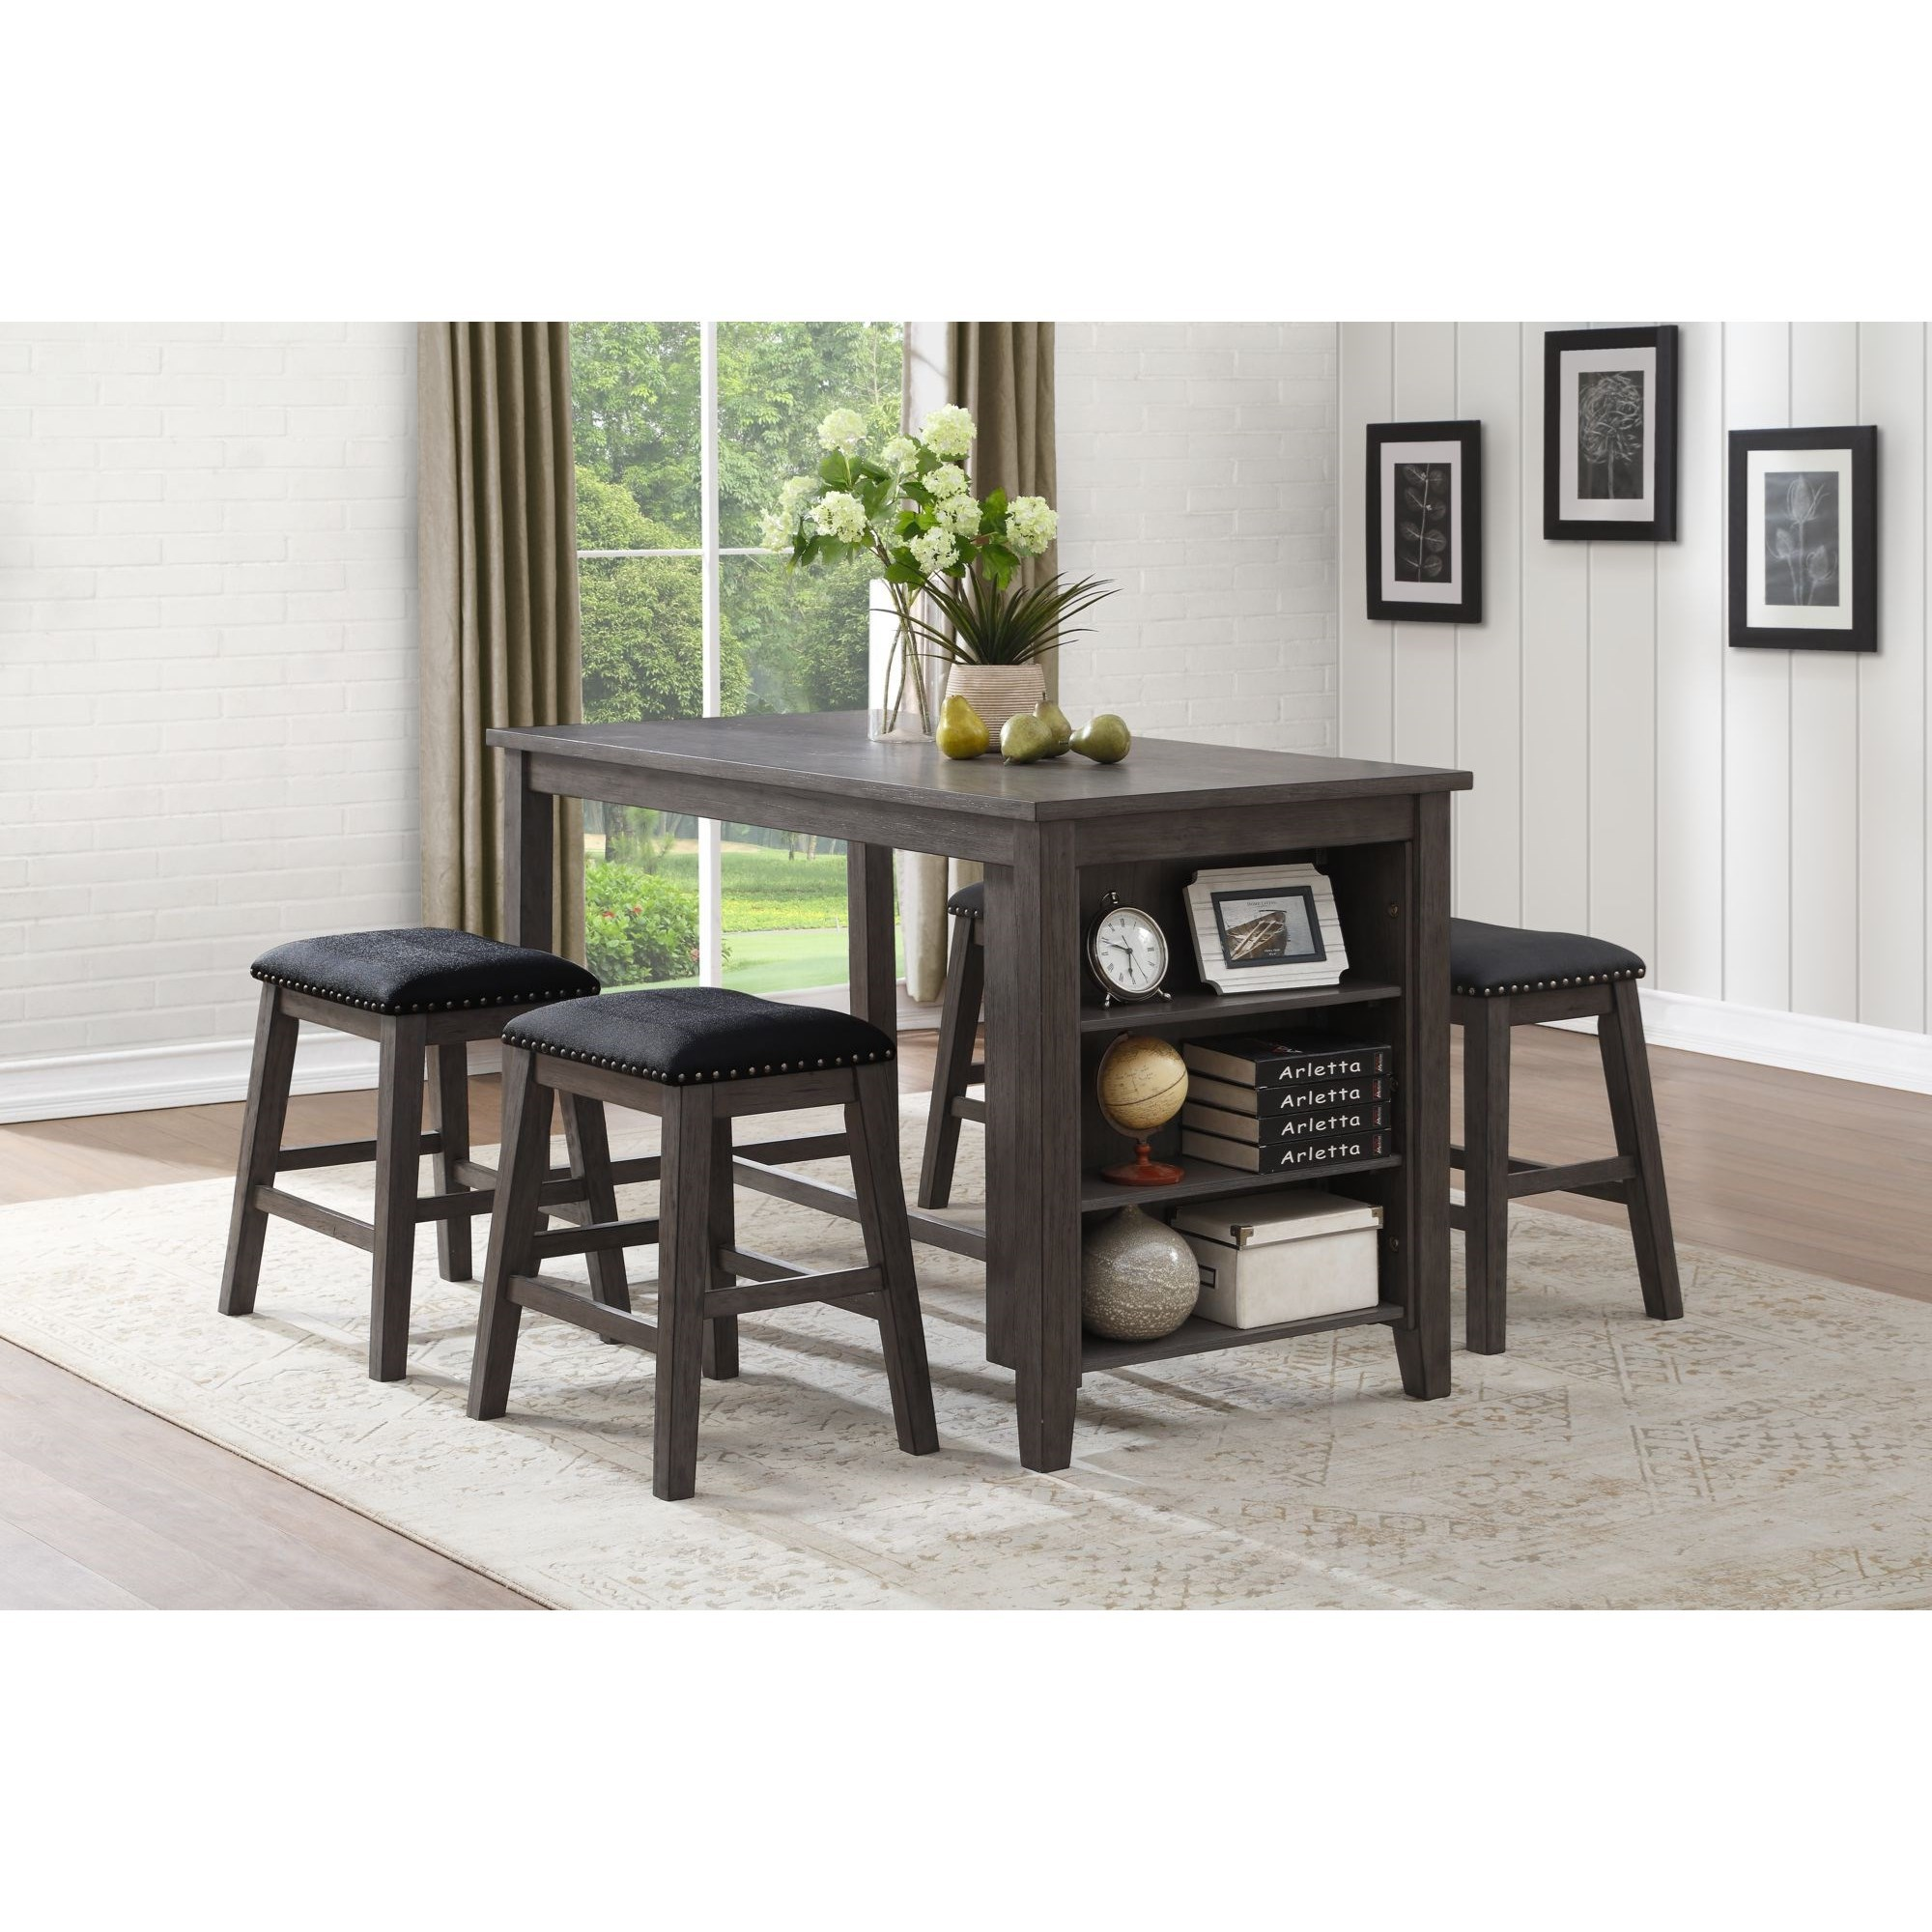 Homelegance 5603 Transitional Counter Height Table With 3